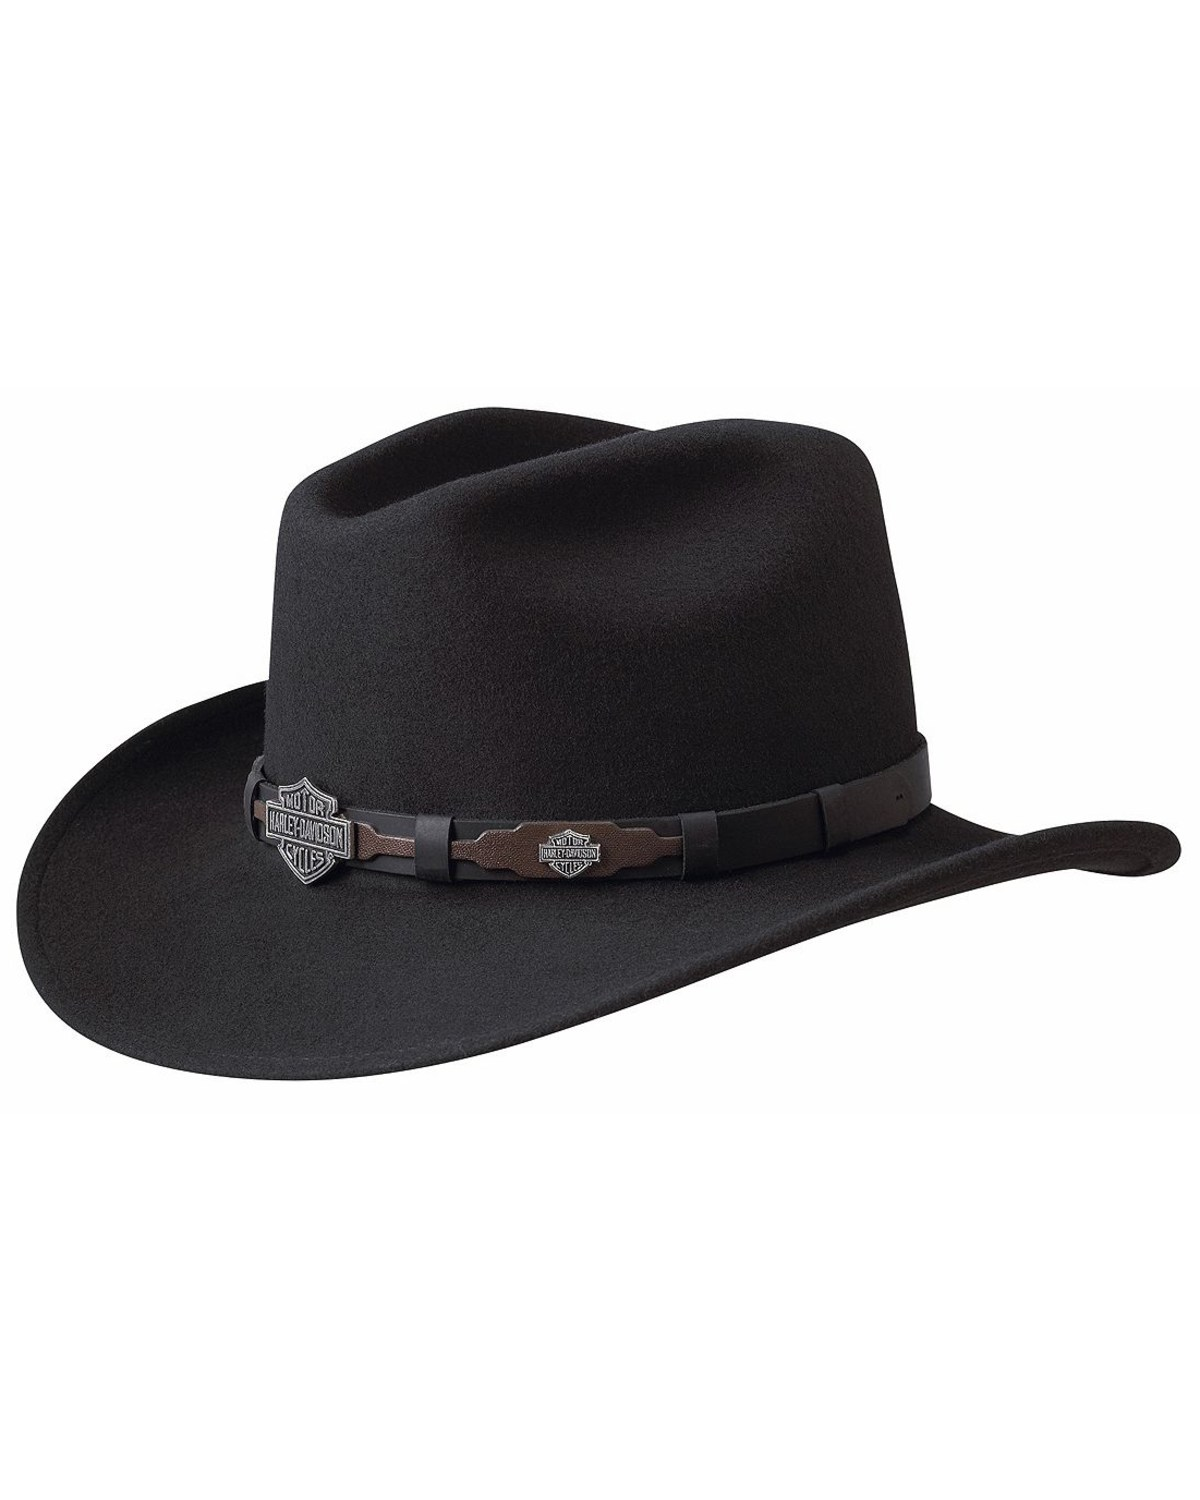 993000562 Harley Davidson Leather Overlay & Concho Wool Felt Crushable Cowboy Hat